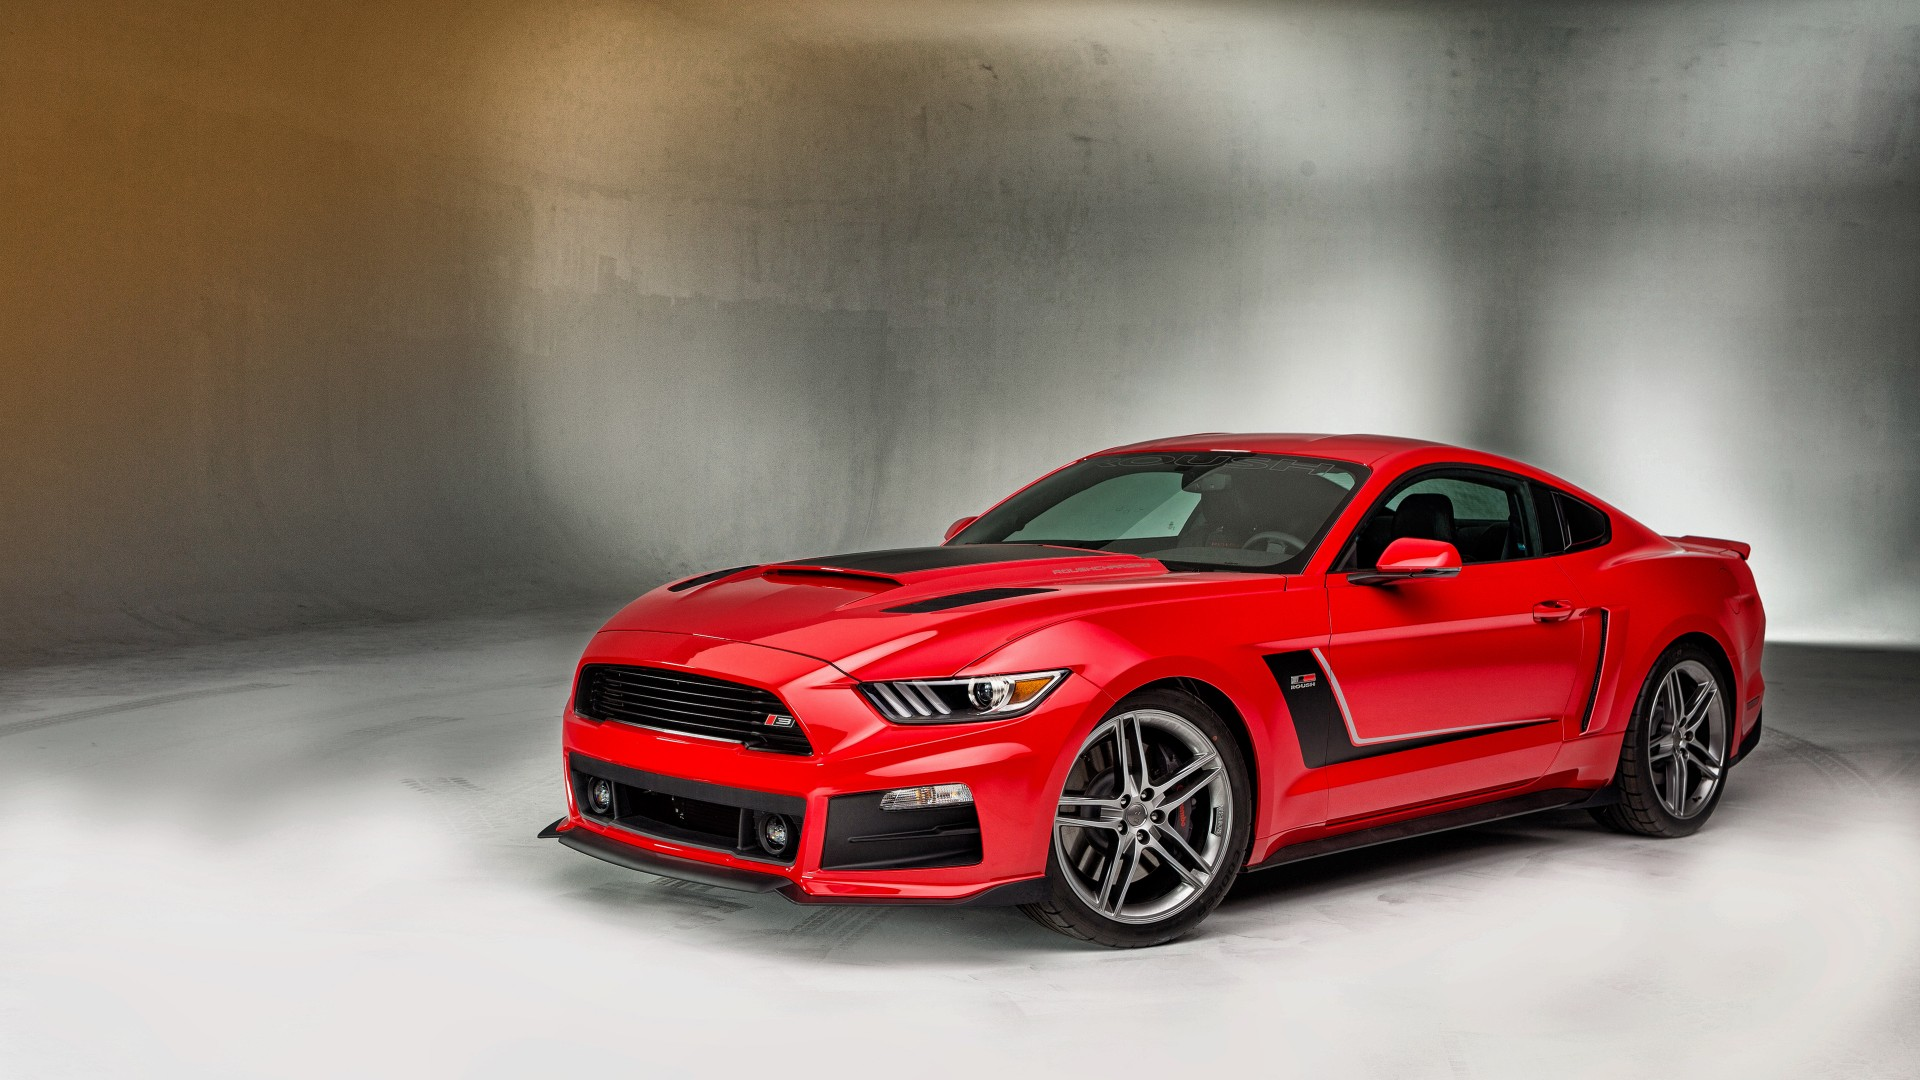 Roush Ford Mustang Rs 2015 Wallpaper Hd Car Wallpapers